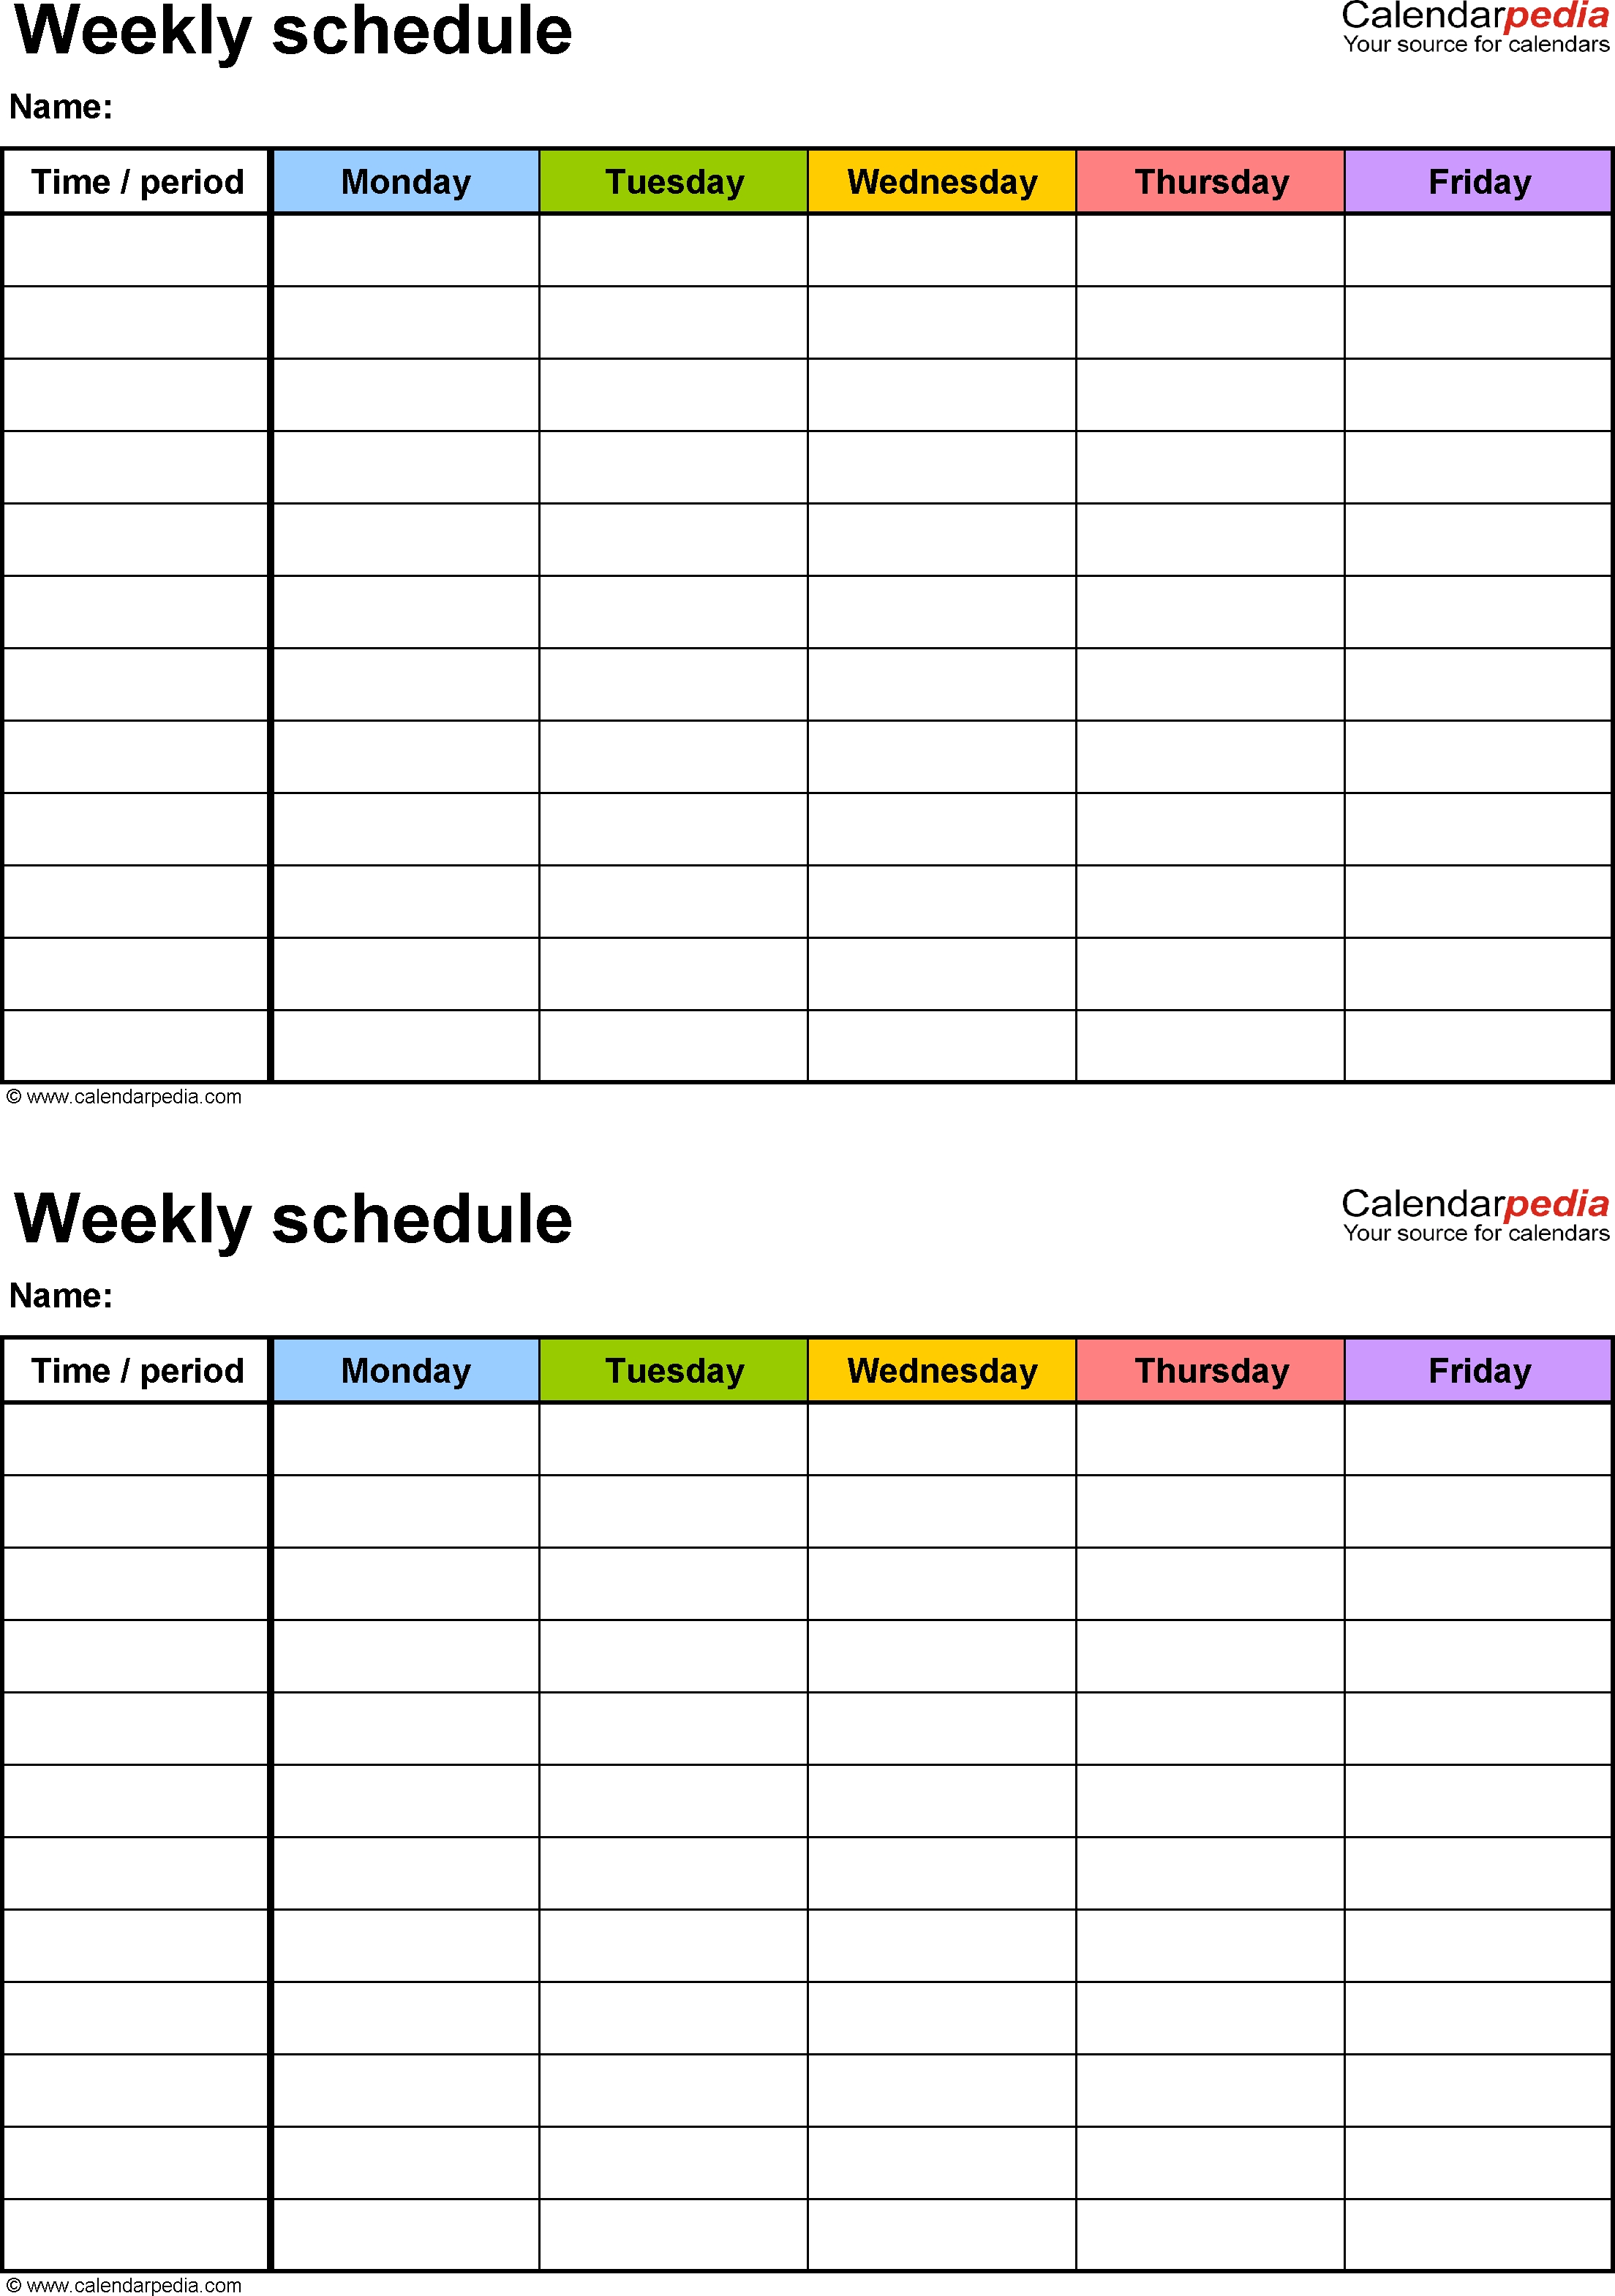 free weekly schedule templates for excel 18 templates Printable Weekly Calendar With 15 Minute Time Slots erdferdf